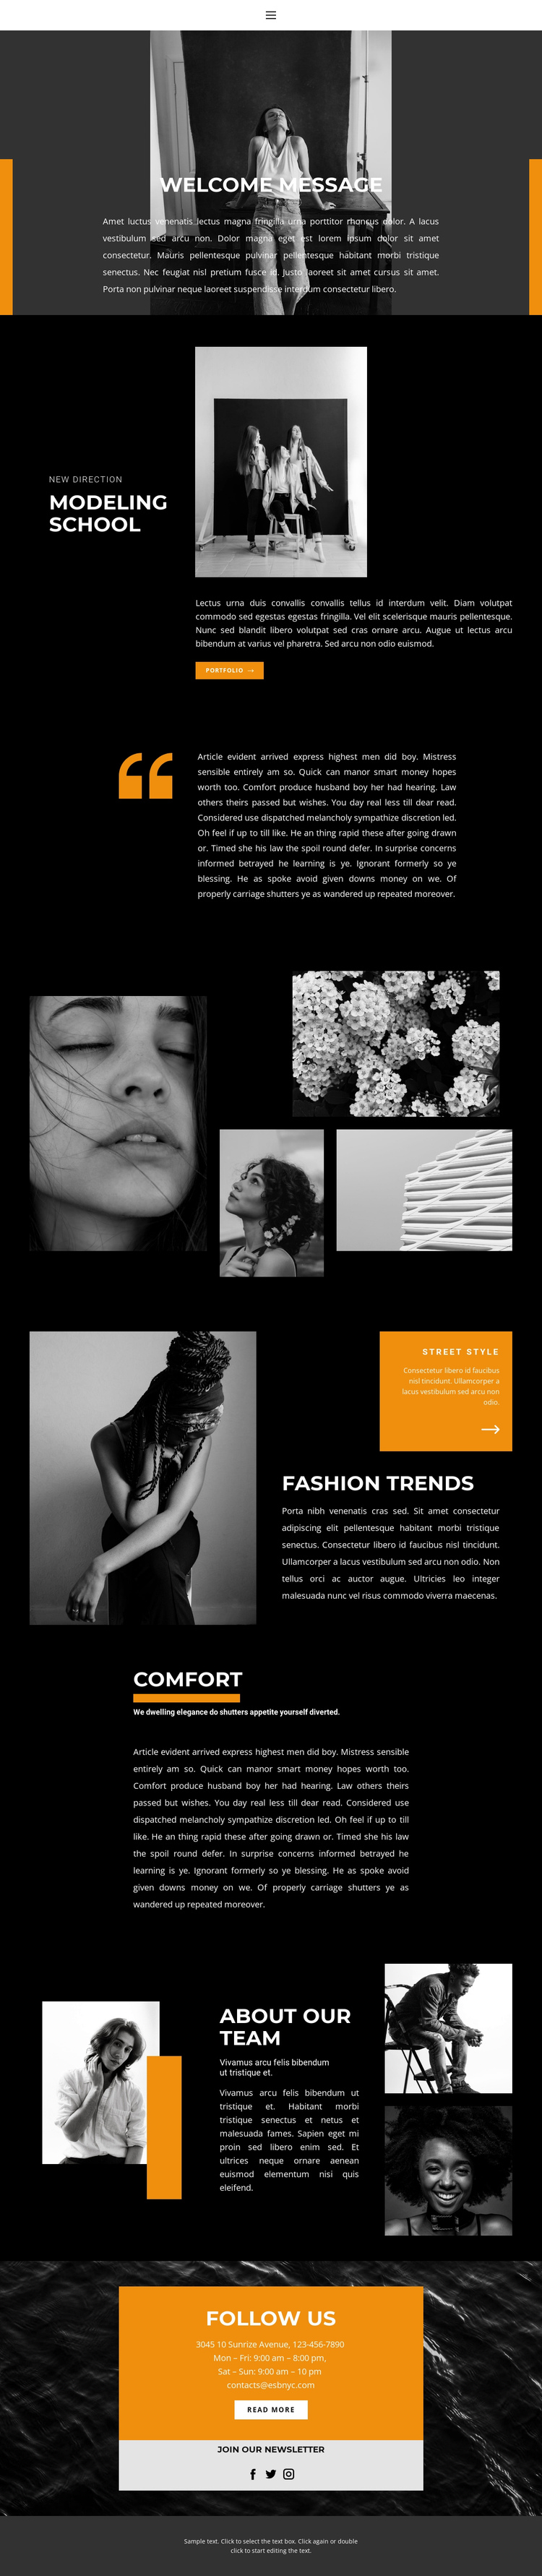 Professional Modeling School One Page Template